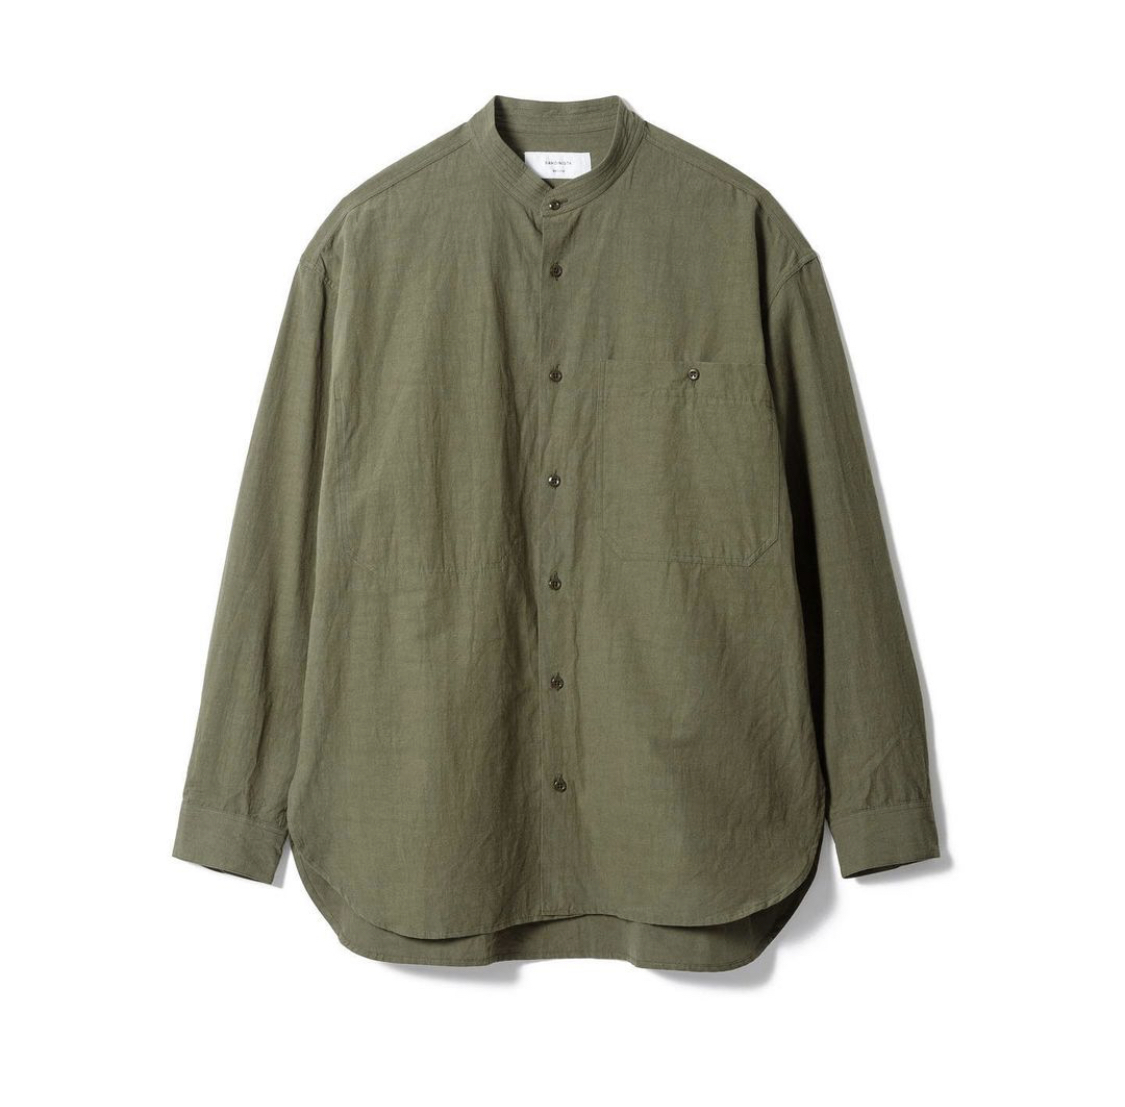 "SANDINISTA""Band Collar Cotton Linen Military Shirt\""_d0101000_16003749.jpeg"